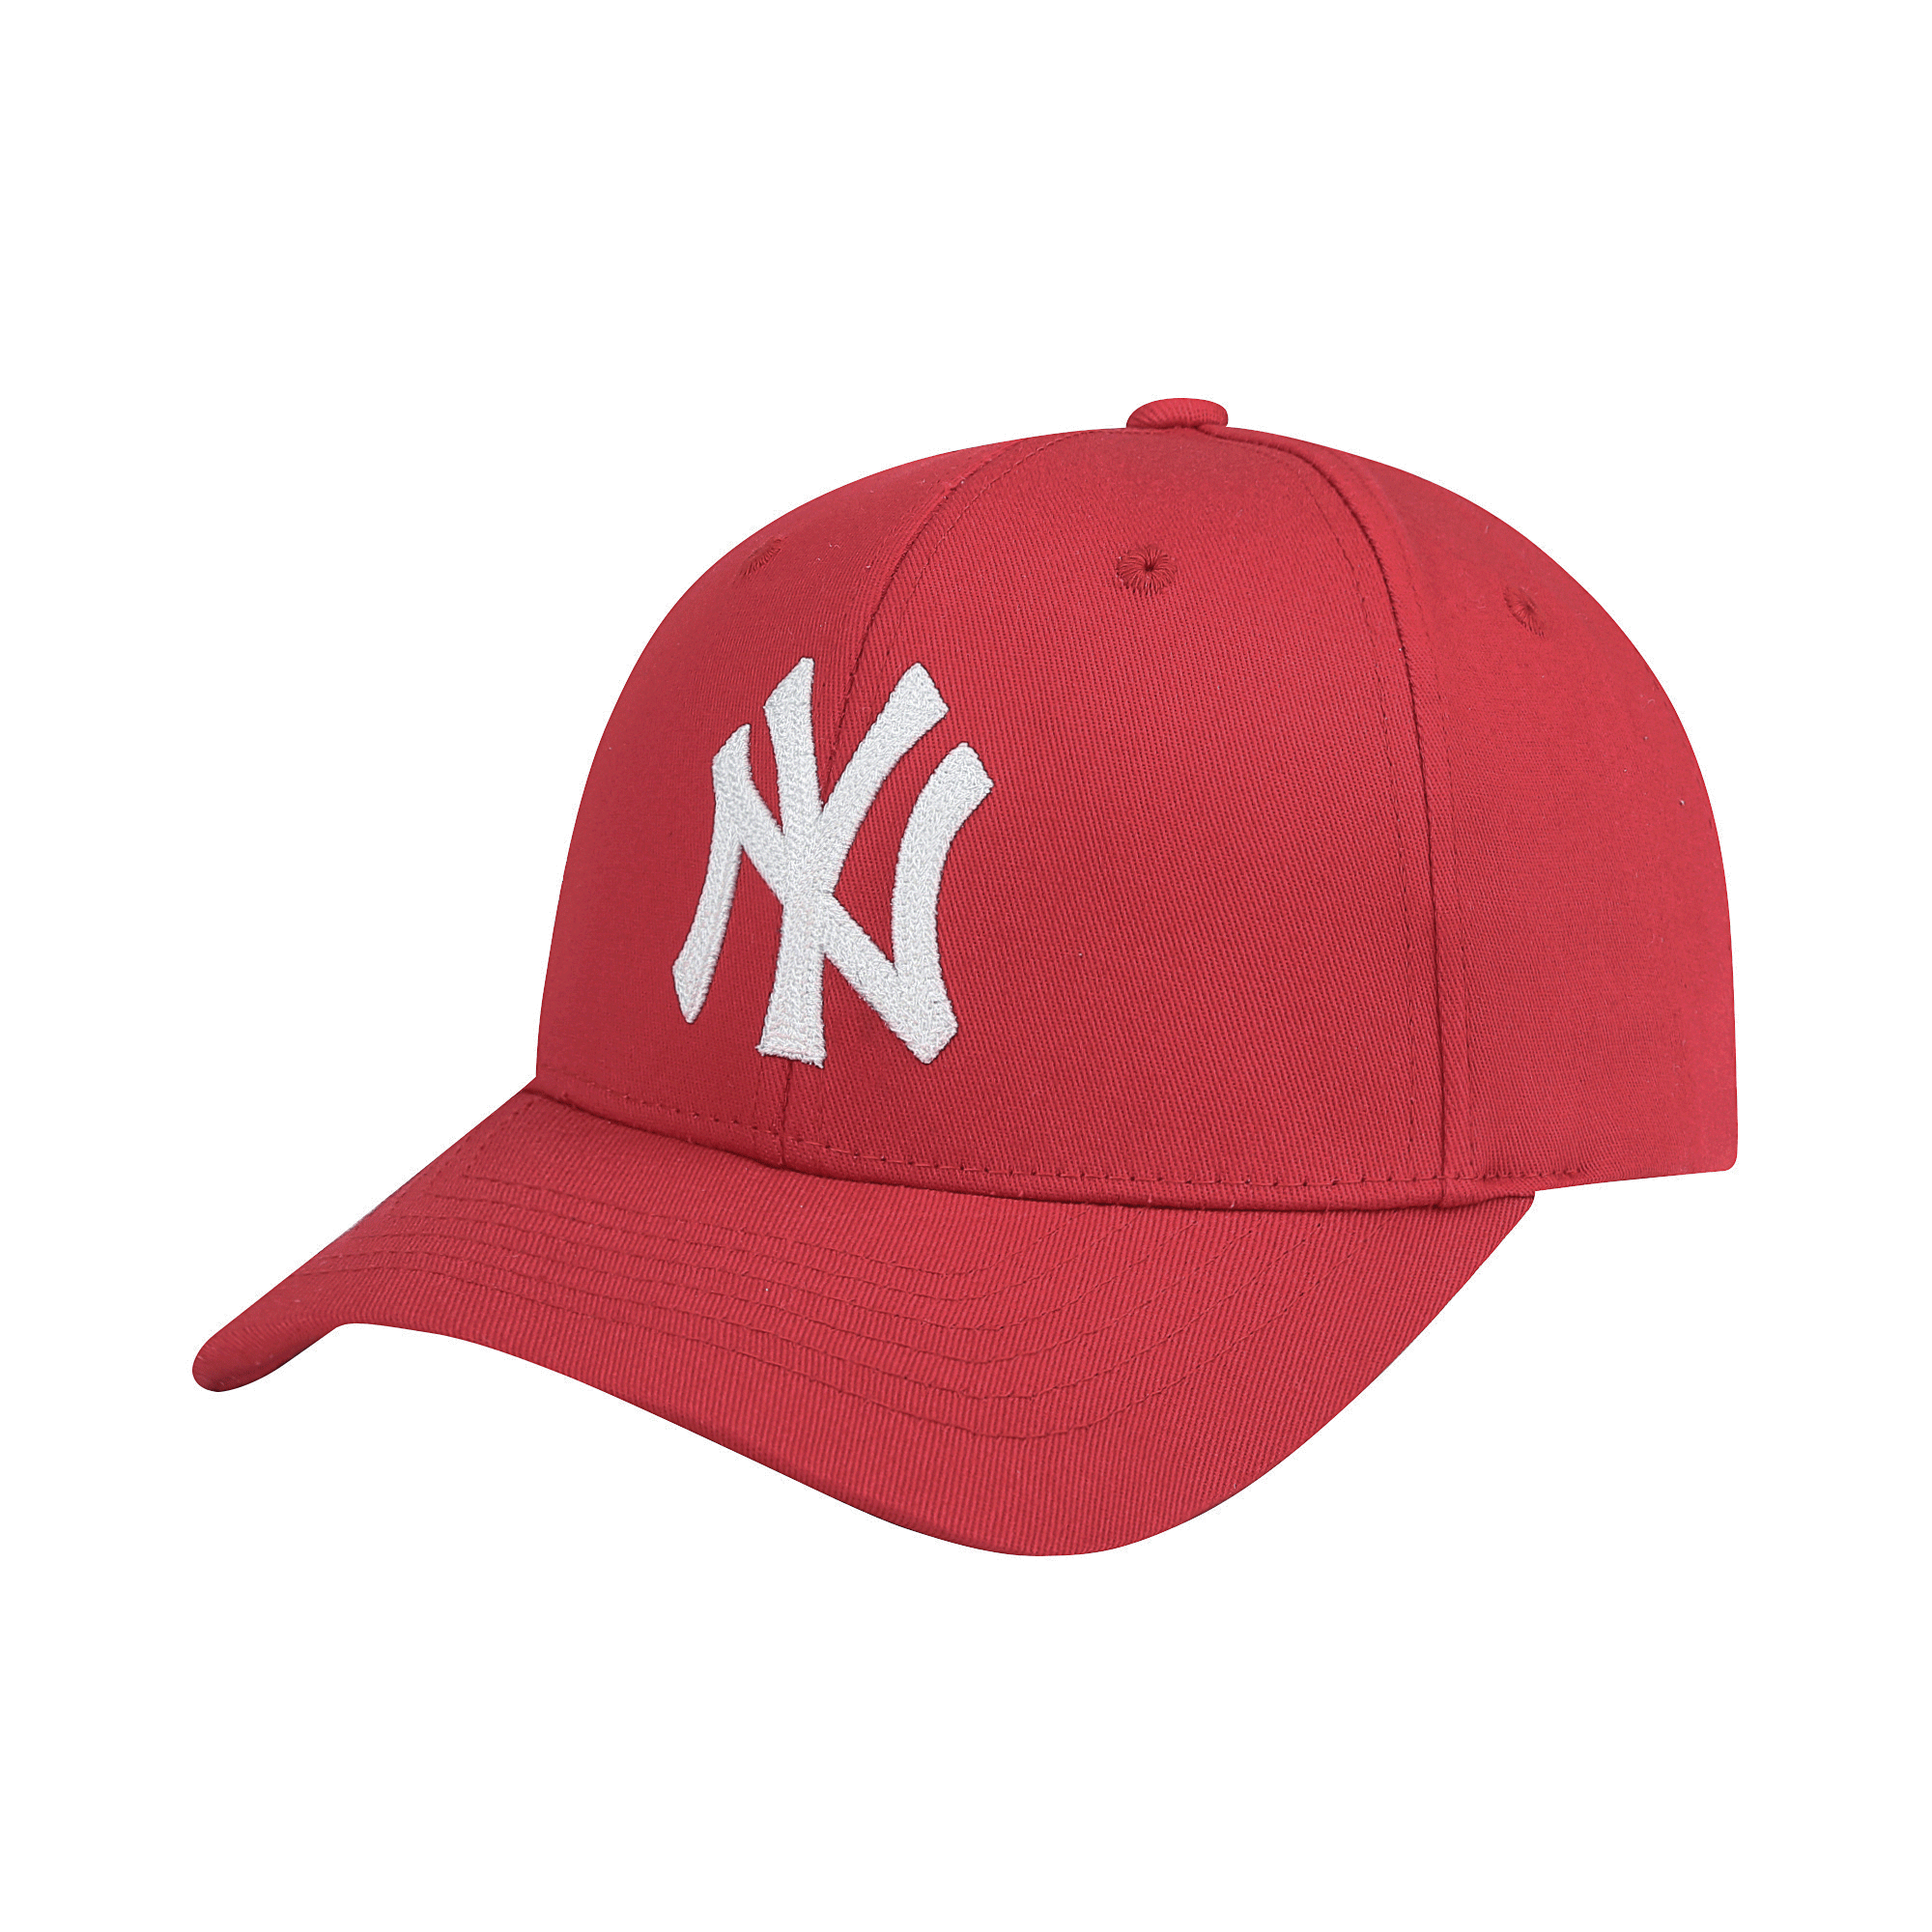 NEW YORK YANKEES CHAIN EMBROIDERY ONE-POINT ADJUSTABLE CAP